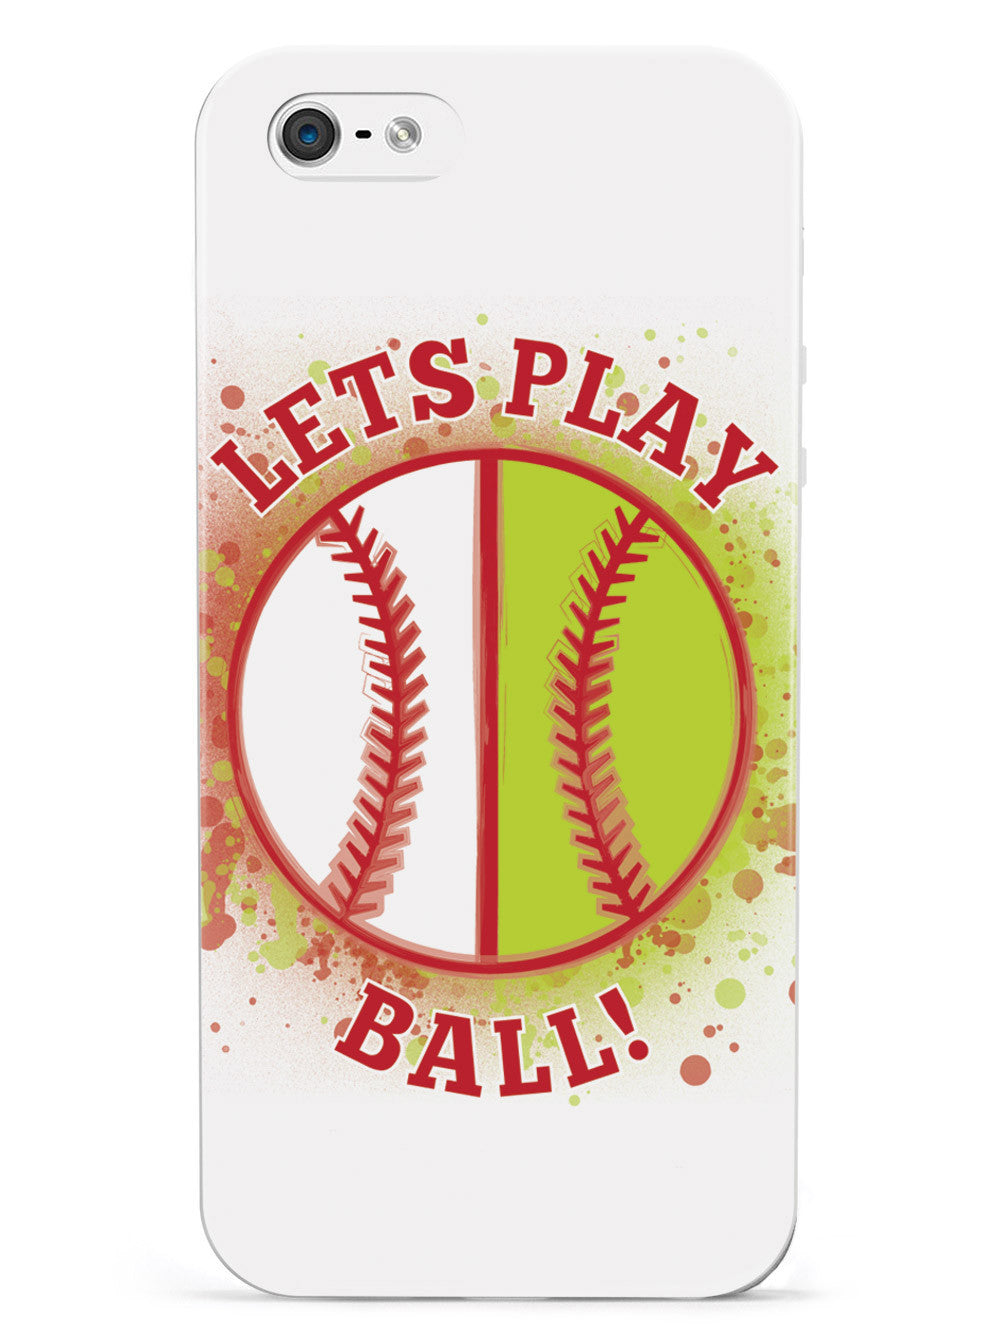 Let's Play Ball Case